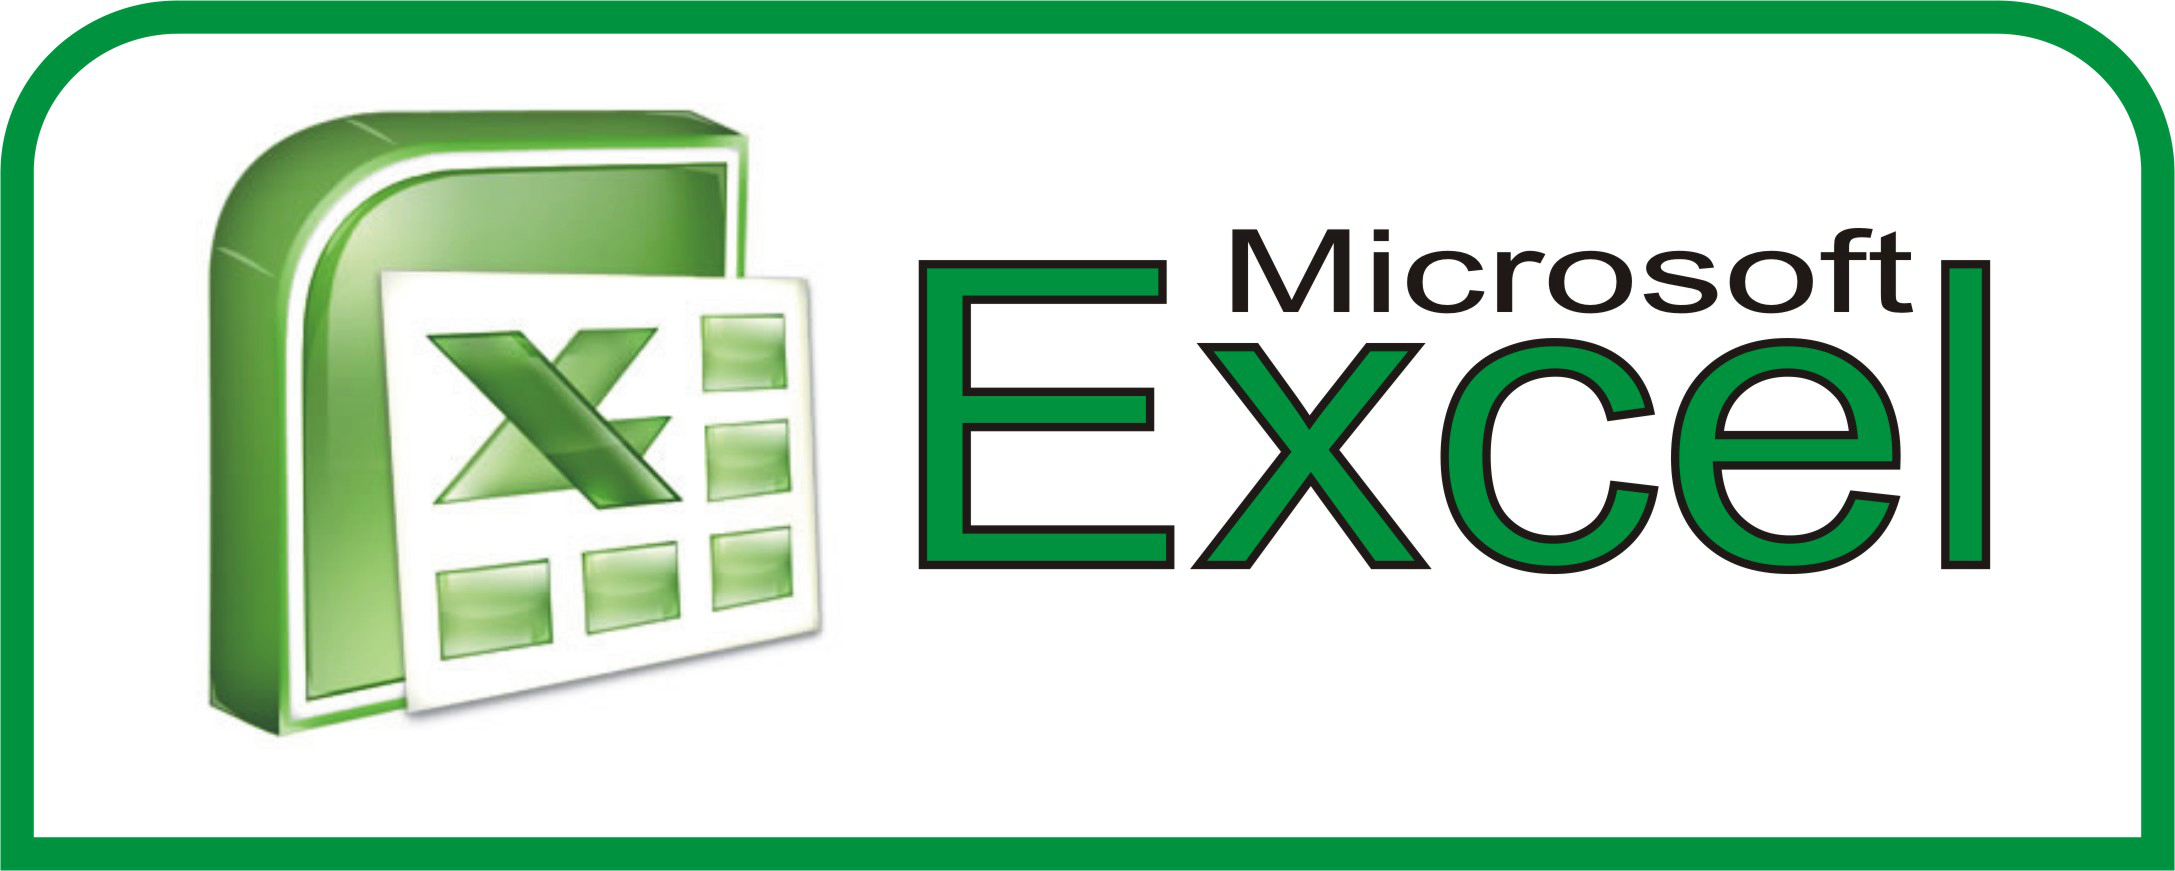 Ediblewildsus  Winsome  Excel Shortcuts You Probably Didnt Know About  Techdissected With Gorgeous Vlook Up In Excel Besides Excel Choose Formula Furthermore Excel Formula Syntax With Appealing Interest Calculator Excel Also Chore Chart Template Excel In Addition How To Build A Database In Excel And Combobox In Excel As Well As Types Of Excel Charts Additionally Combine Excel Files Into One Workbook From Techdissectedcom With Ediblewildsus  Gorgeous  Excel Shortcuts You Probably Didnt Know About  Techdissected With Appealing Vlook Up In Excel Besides Excel Choose Formula Furthermore Excel Formula Syntax And Winsome Interest Calculator Excel Also Chore Chart Template Excel In Addition How To Build A Database In Excel From Techdissectedcom